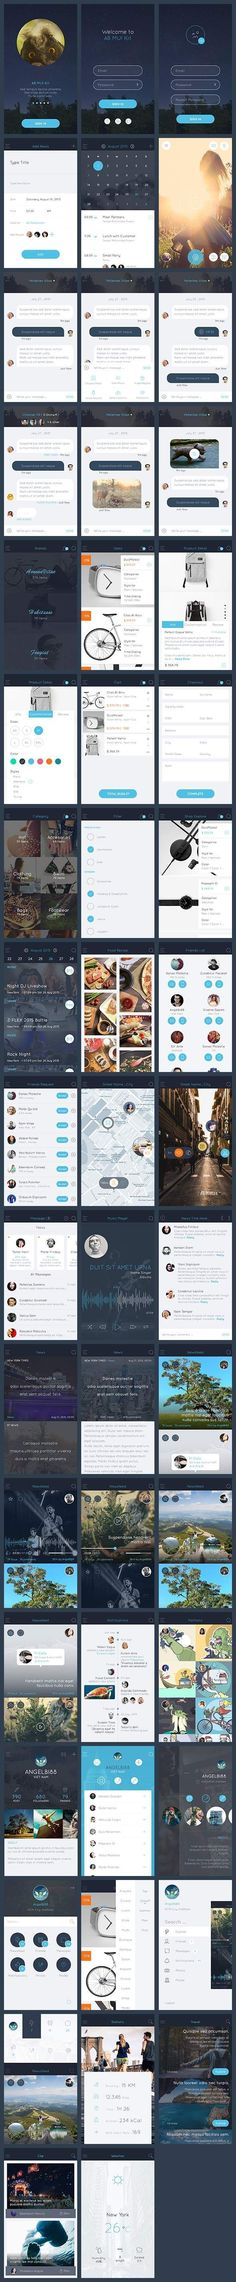 app, app design, bundle, ios 8, ios 9, iphone 6, minimalist, mobile, quality, ui, ui design, ui kit, ux #UX / #UI #Design